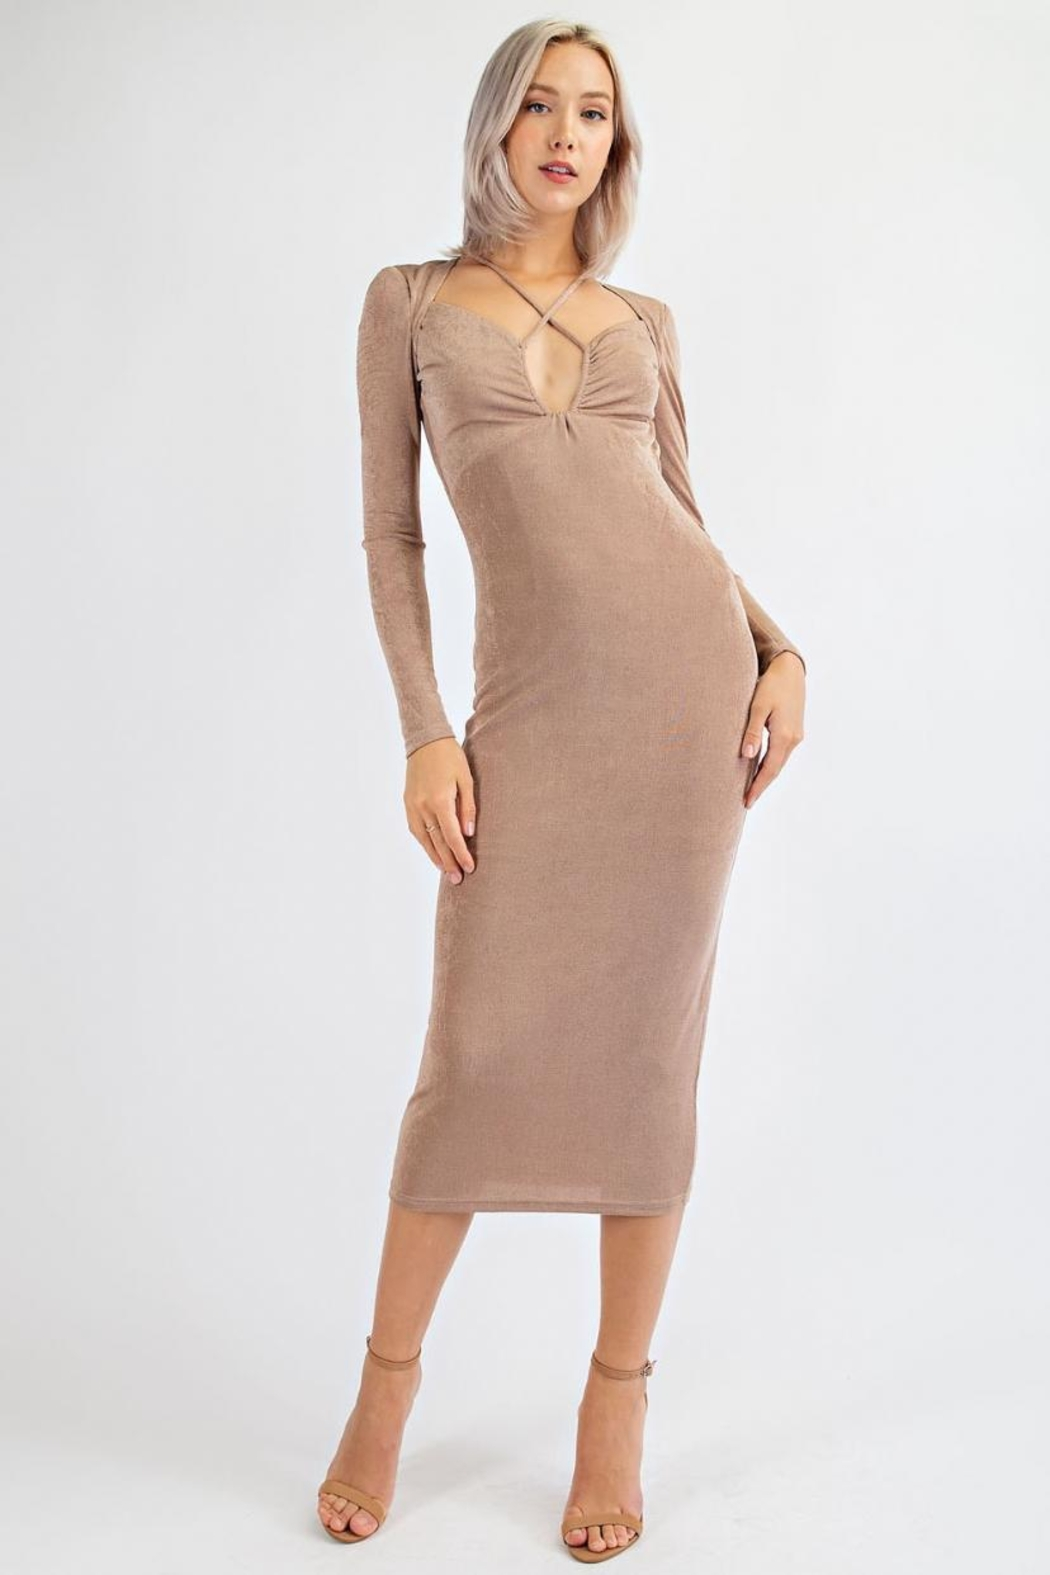 EDIT BY NINE Ruched Bust Dress - Main Image